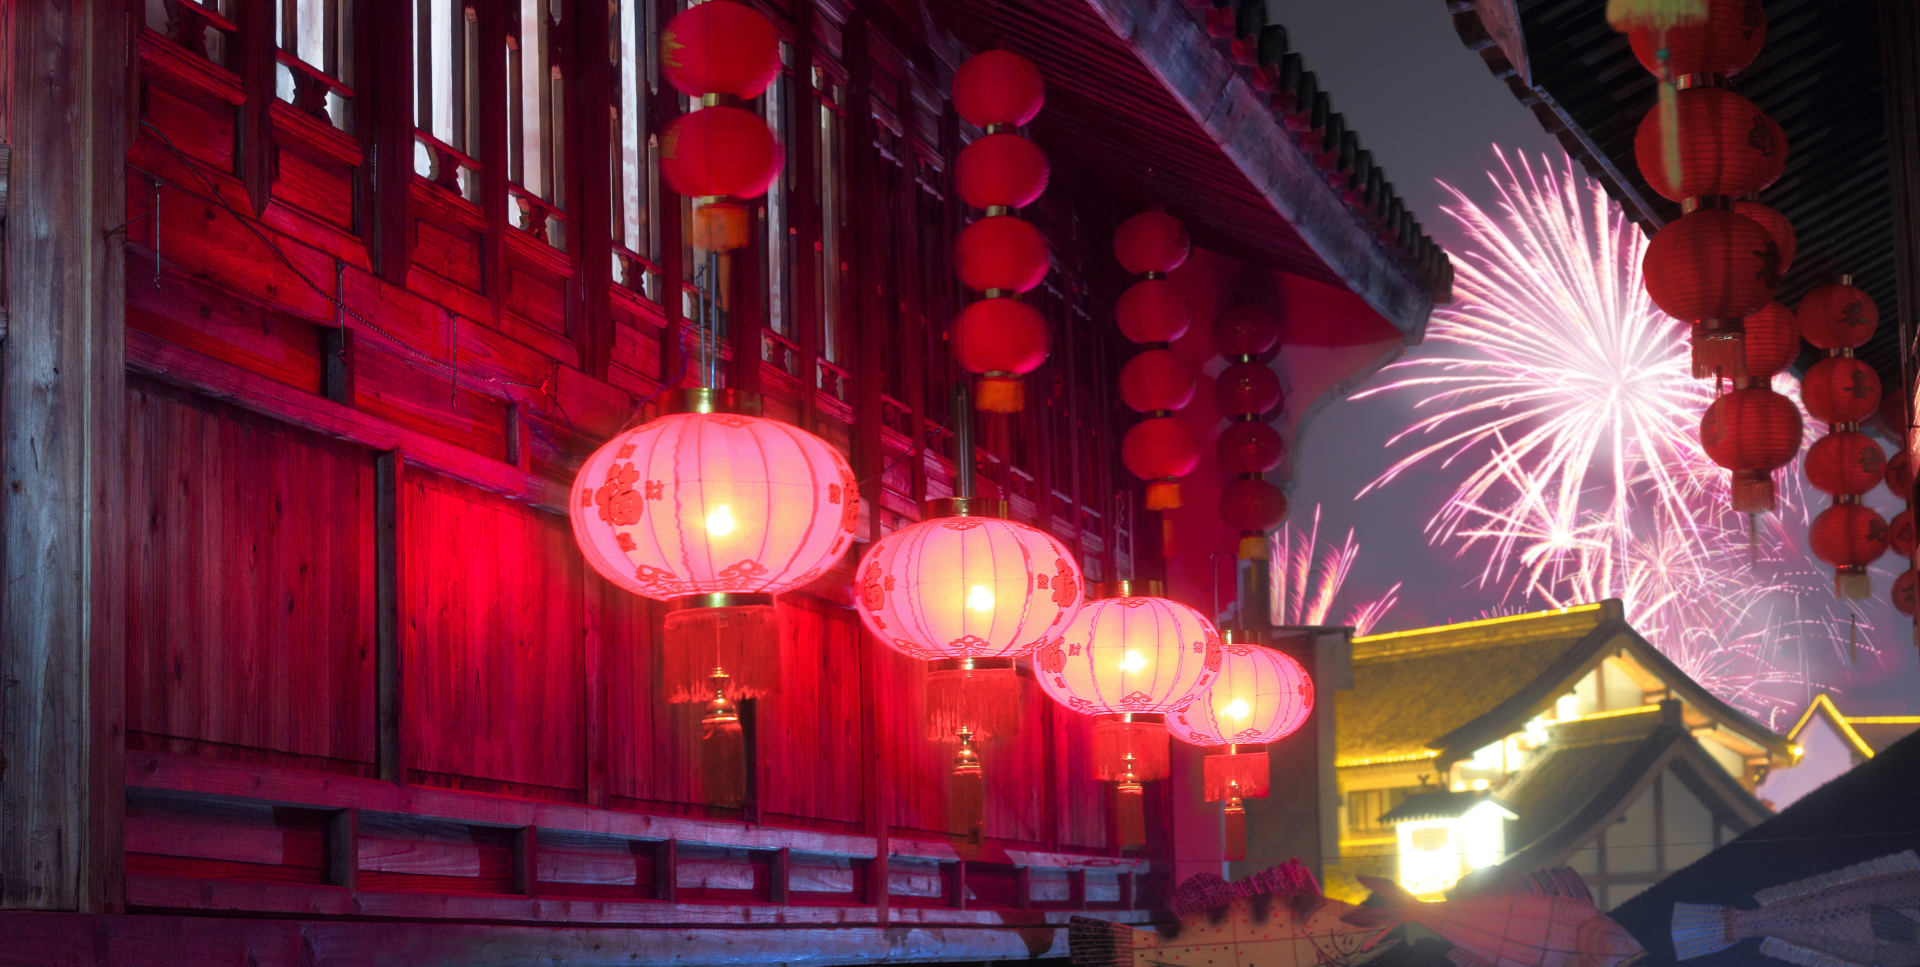 Chinese New Year 2019: 4 trends marketers should capitalise on